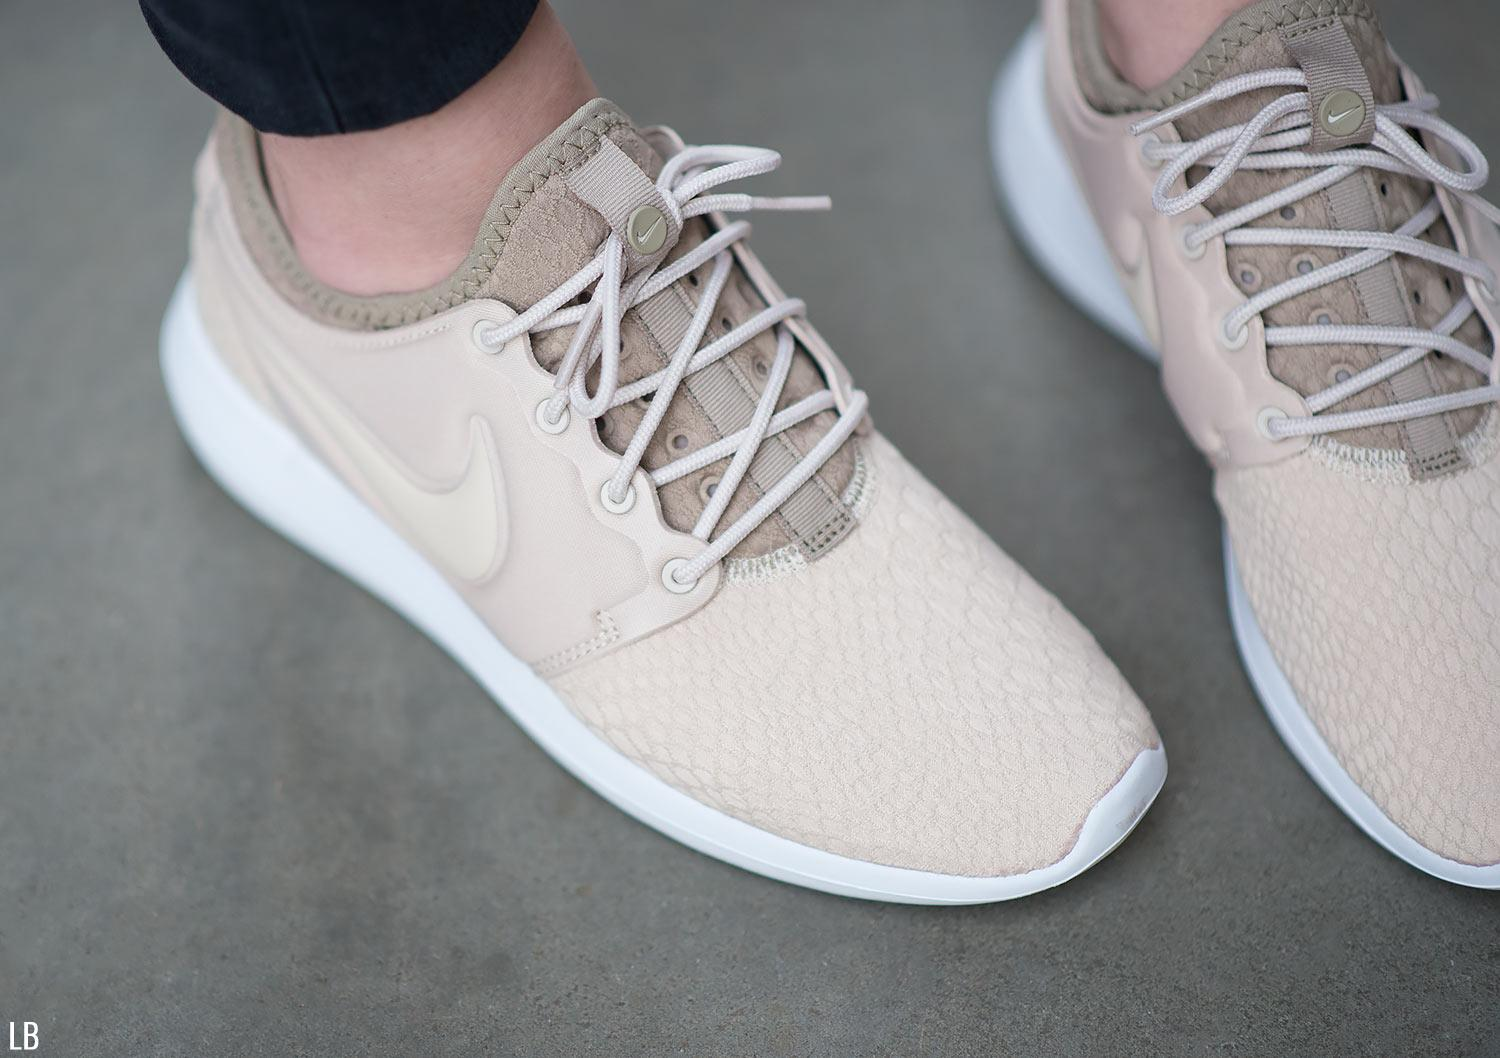 9899acbd6587 Nike Roshe Two 844931 200 Trendy Women s Shoe Best Price sivalicc